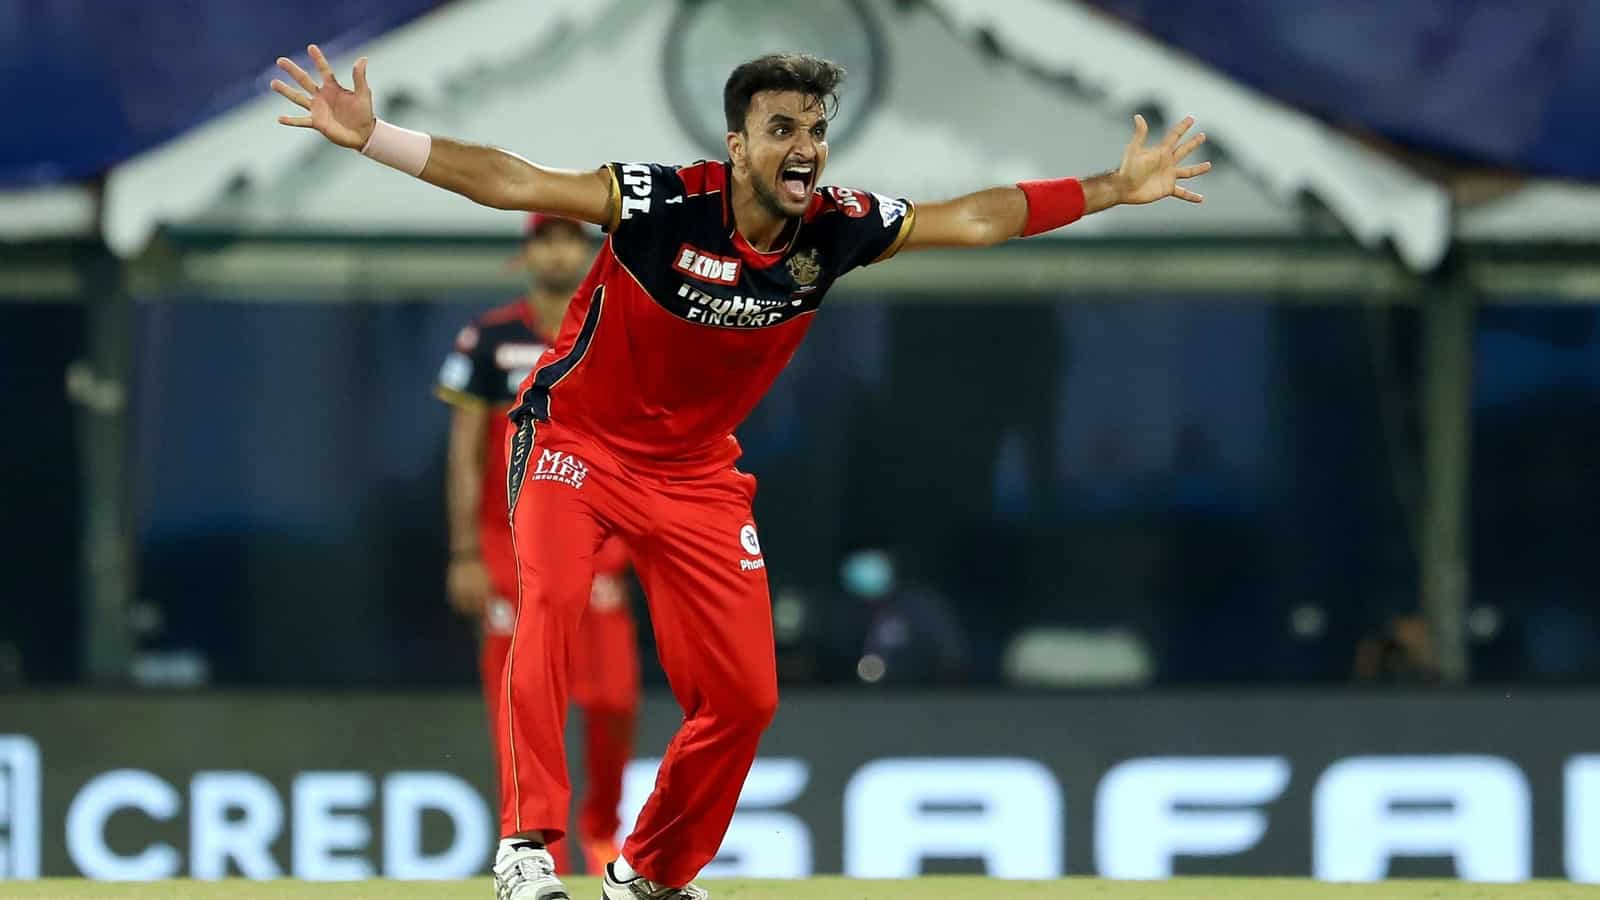 IPL 2021: With a five-wicket haul, Harshal Patel creates unique IPL record in MI vs RCB match | Hindustan Times